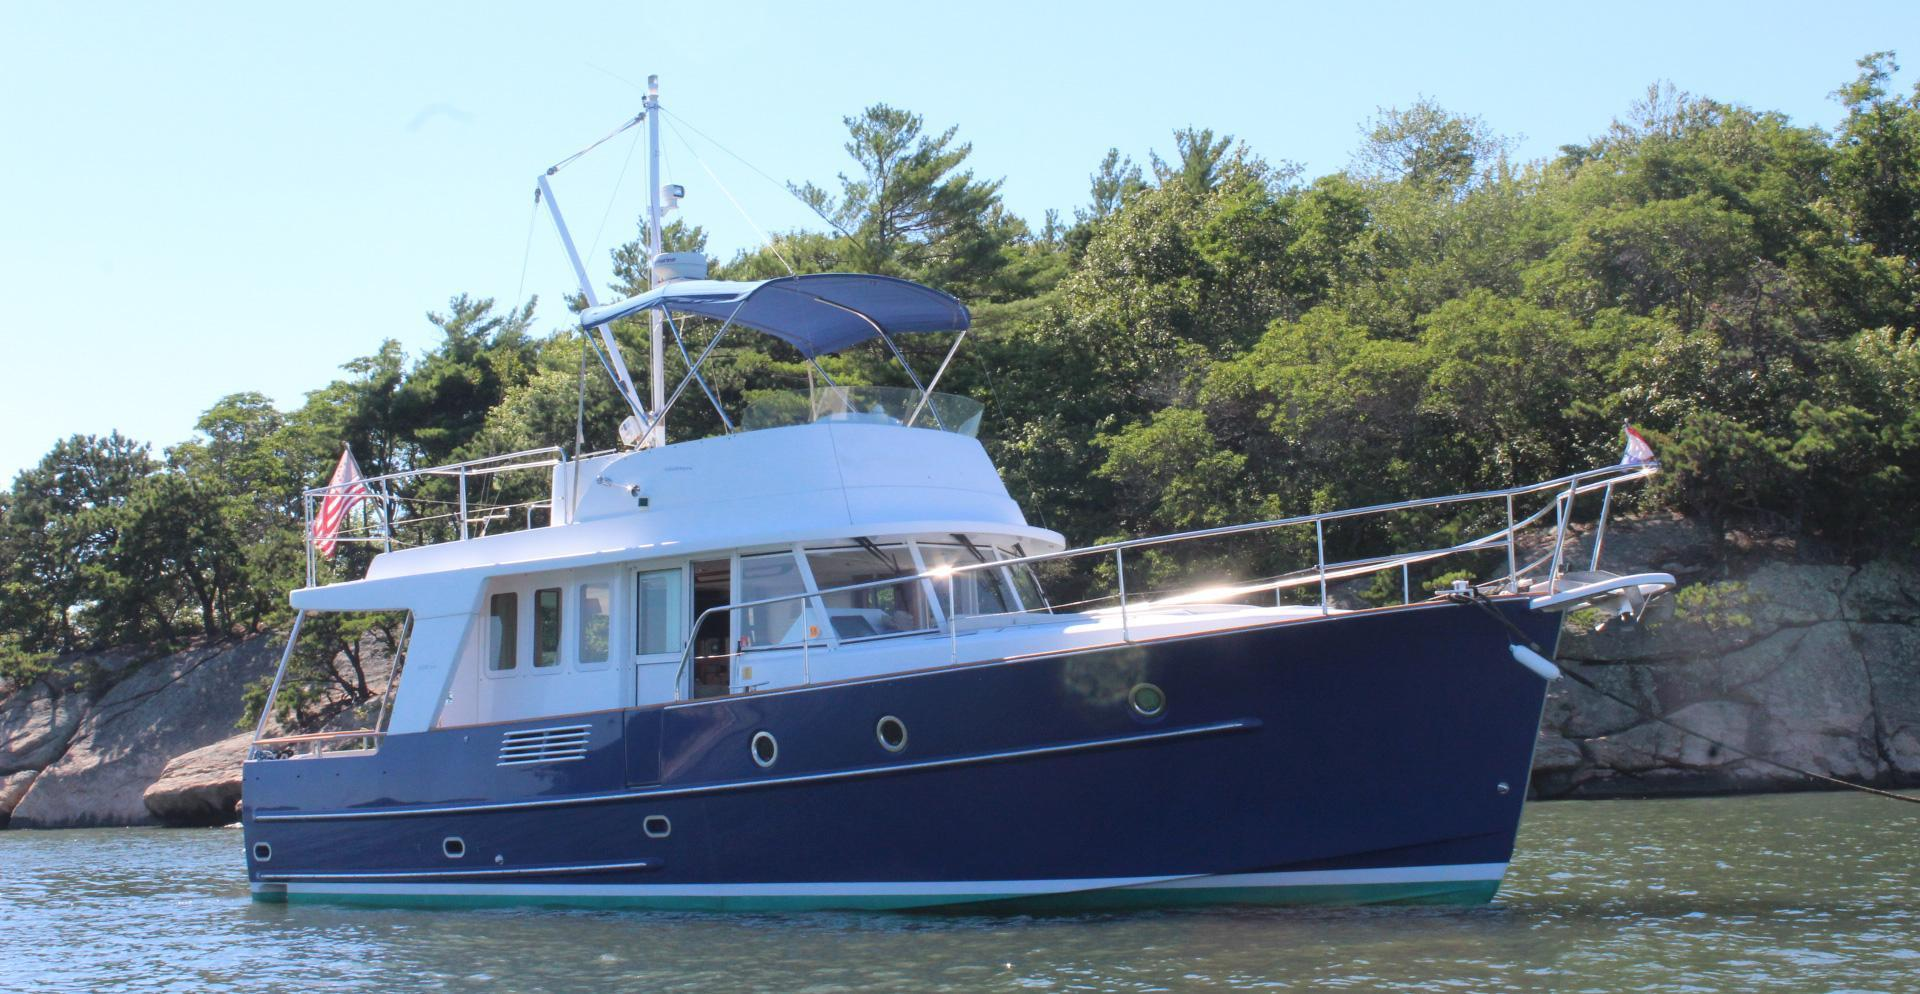 Beneteau-Swift Trawler 42 2006 -Essex-Connecticut-United States-1547732 | Thumbnail